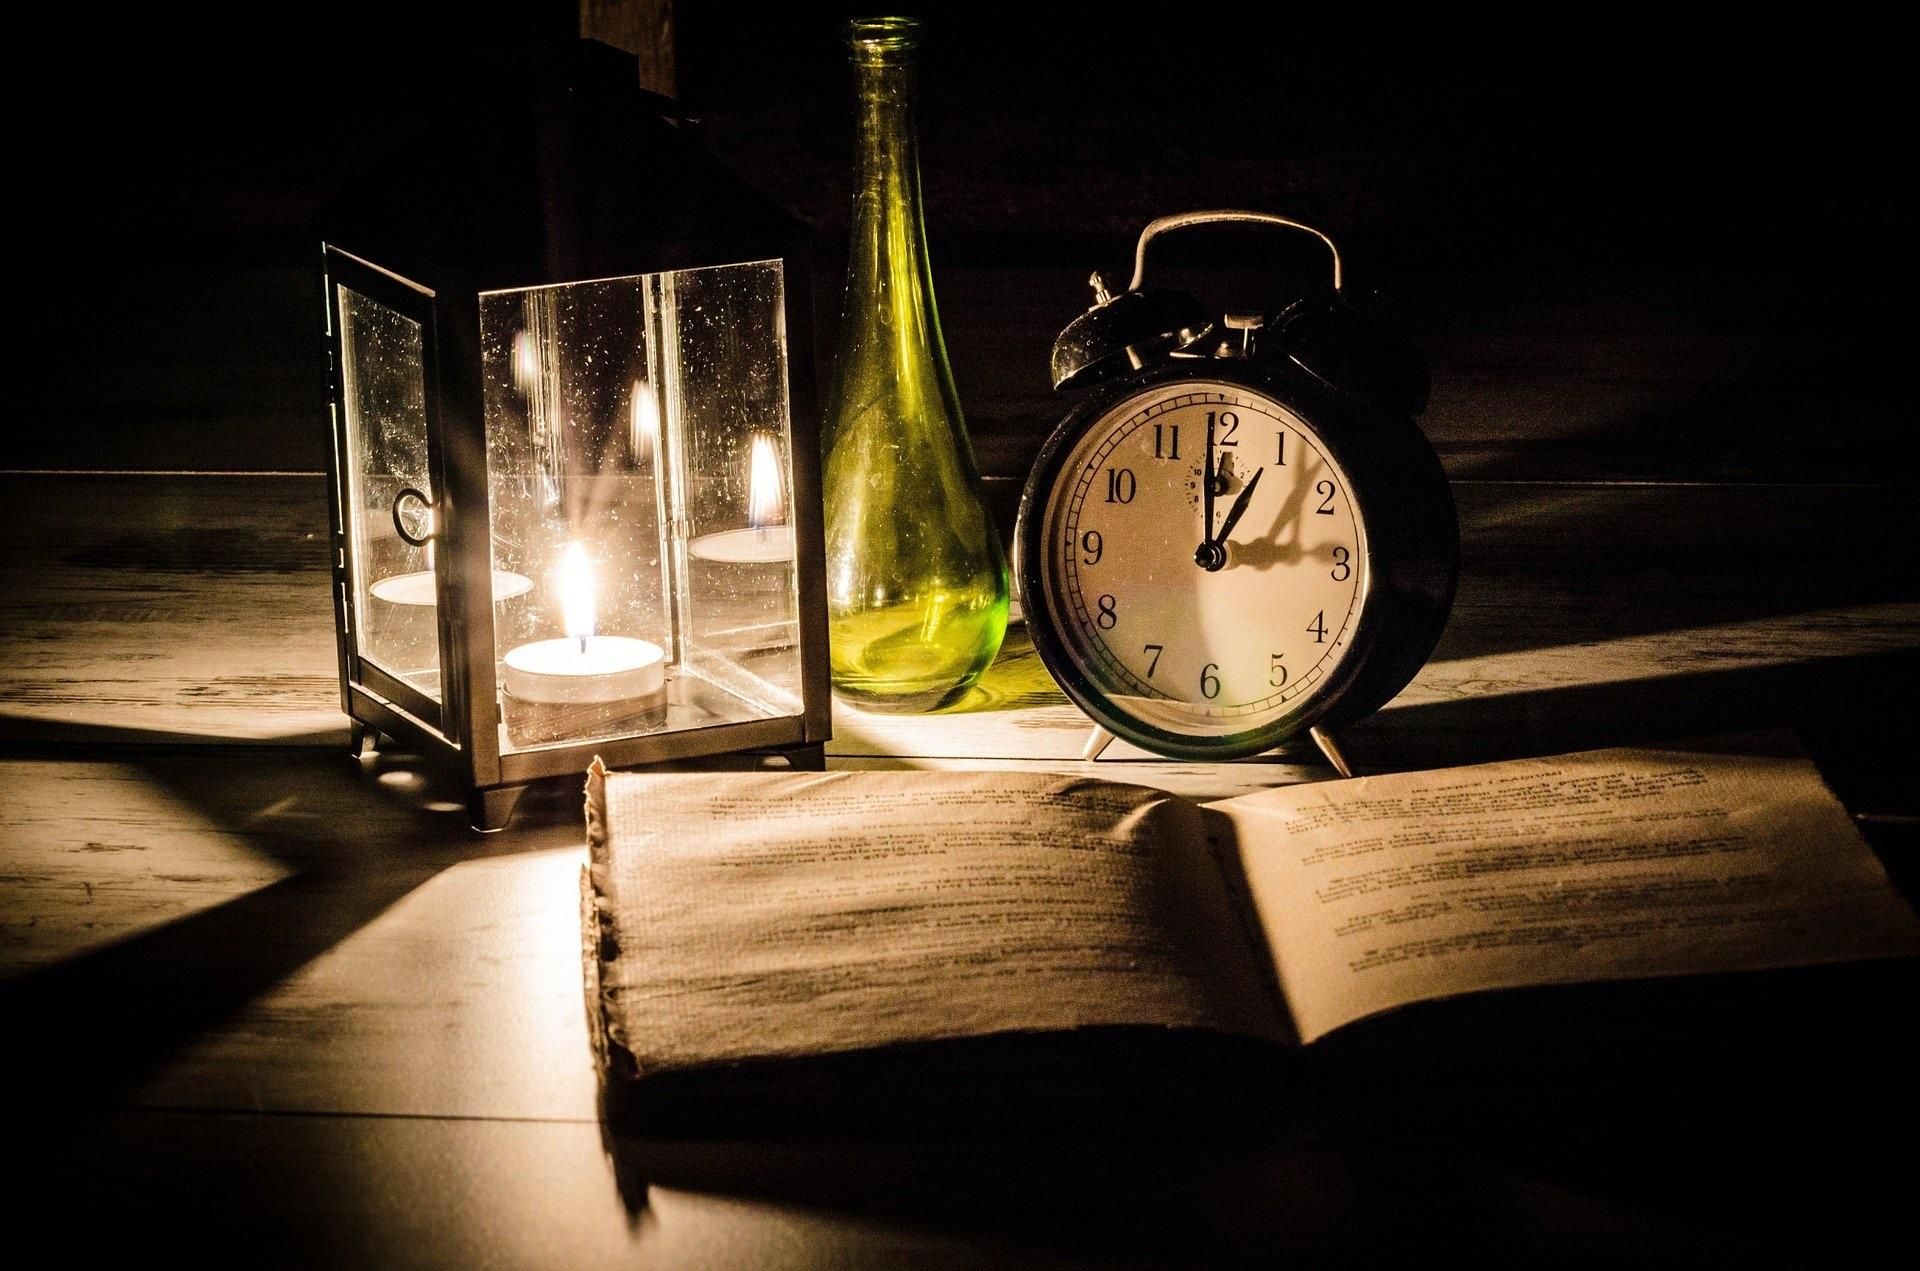 Old fashioned alarm clock and lit glass lantern behind a open book